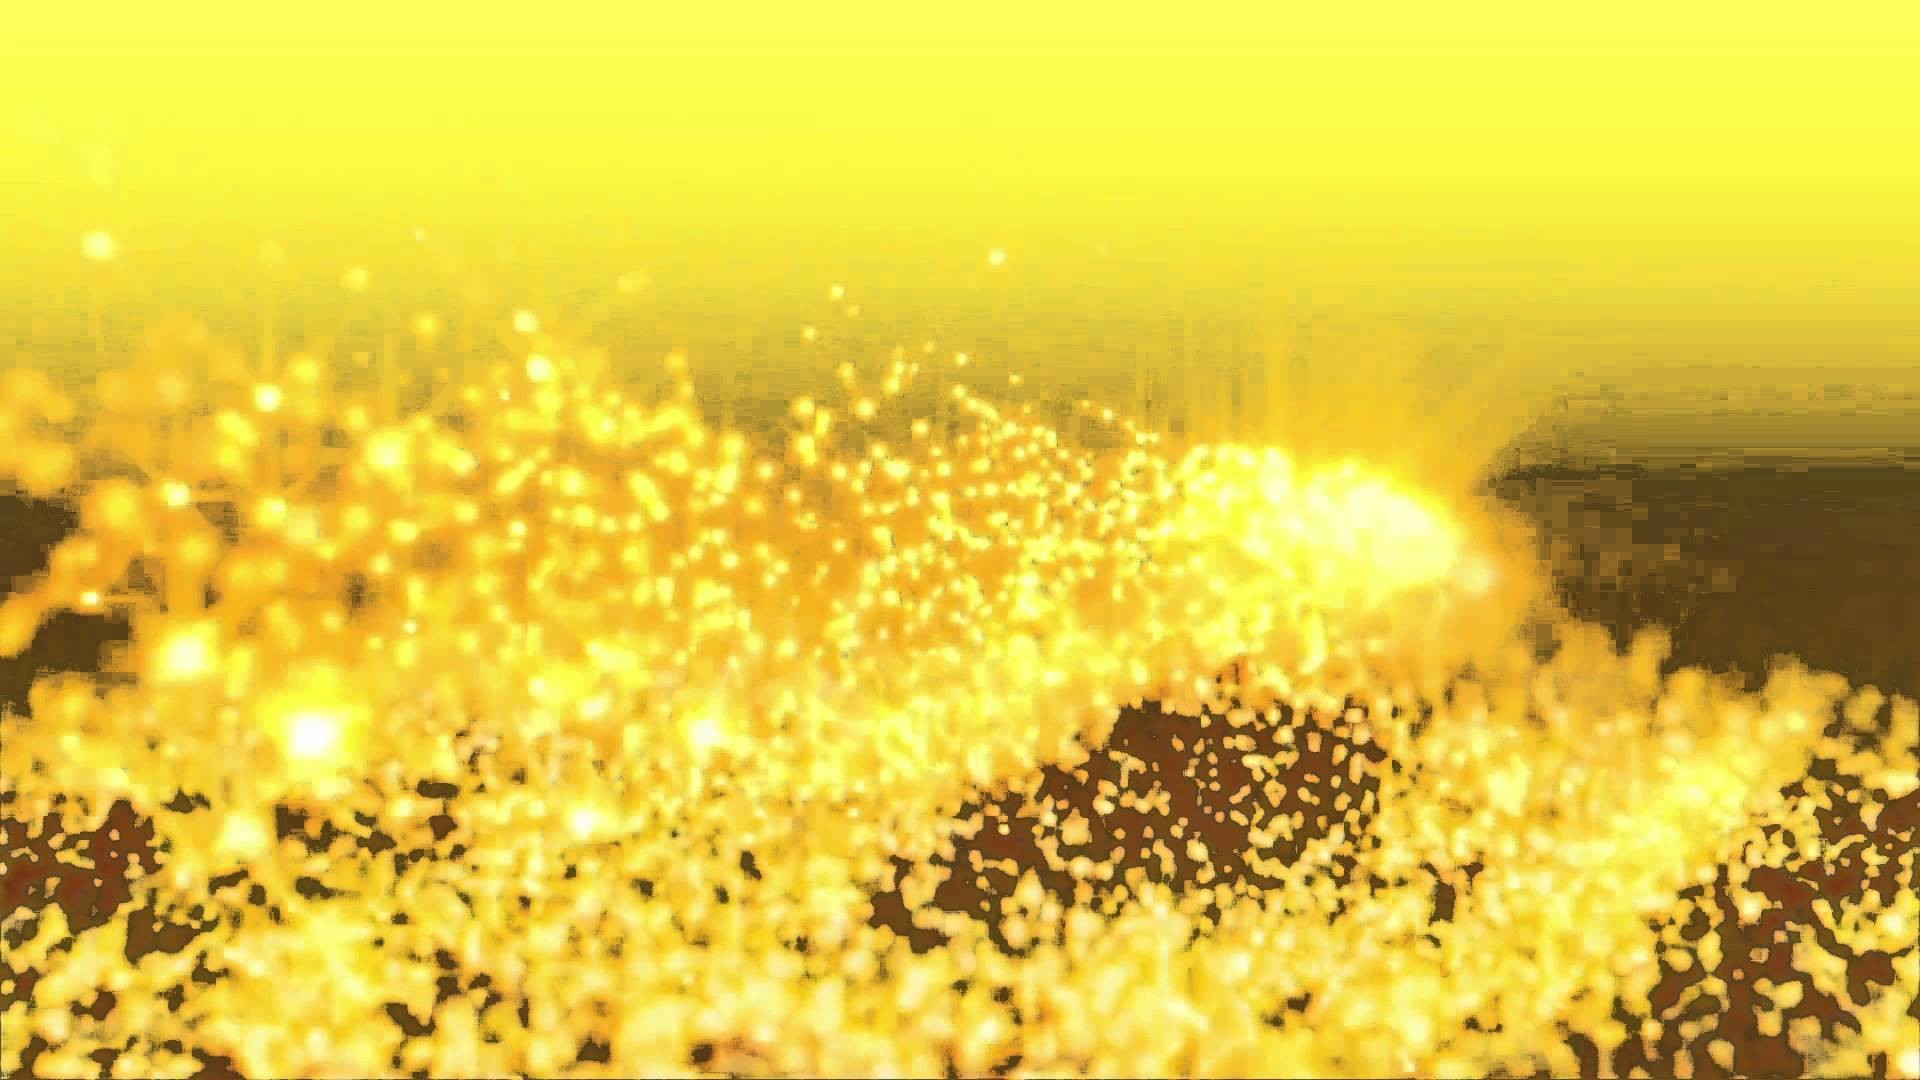 1920x1080 Animated Backgrounds Wallpapers Gold Dust Wind Particles HD - Footage  PixelBoom CG - YouTube